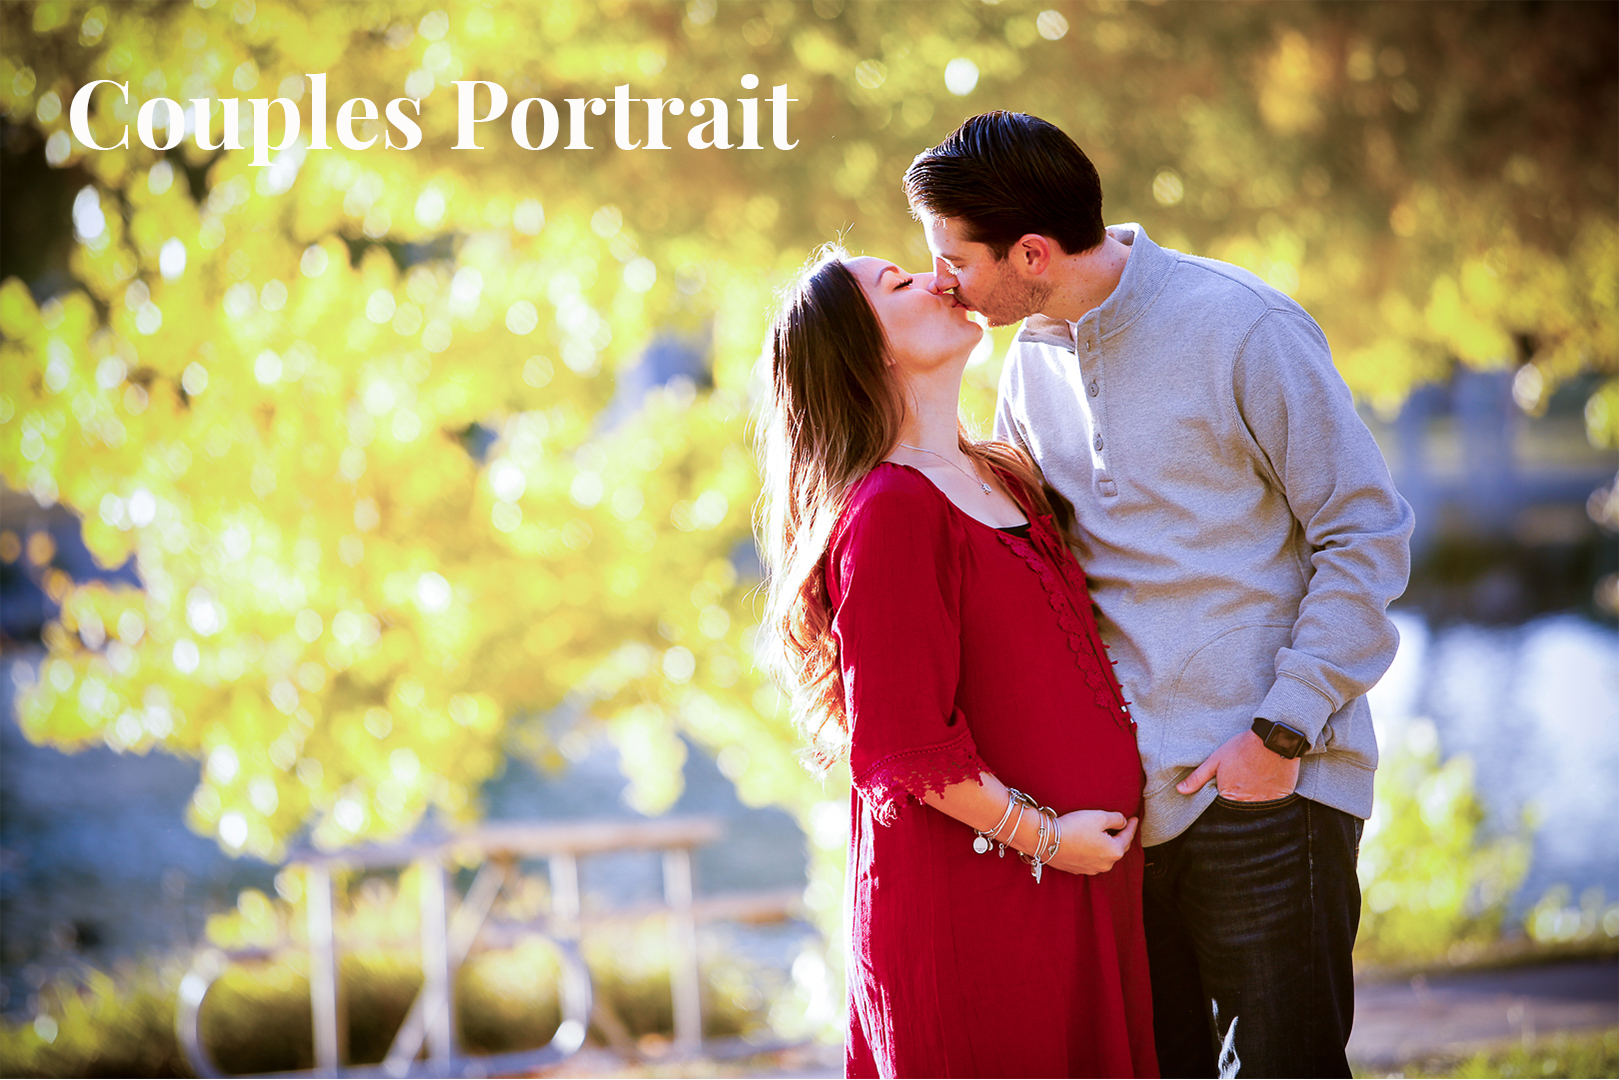 Las Vegas Couples Portrait Photographer